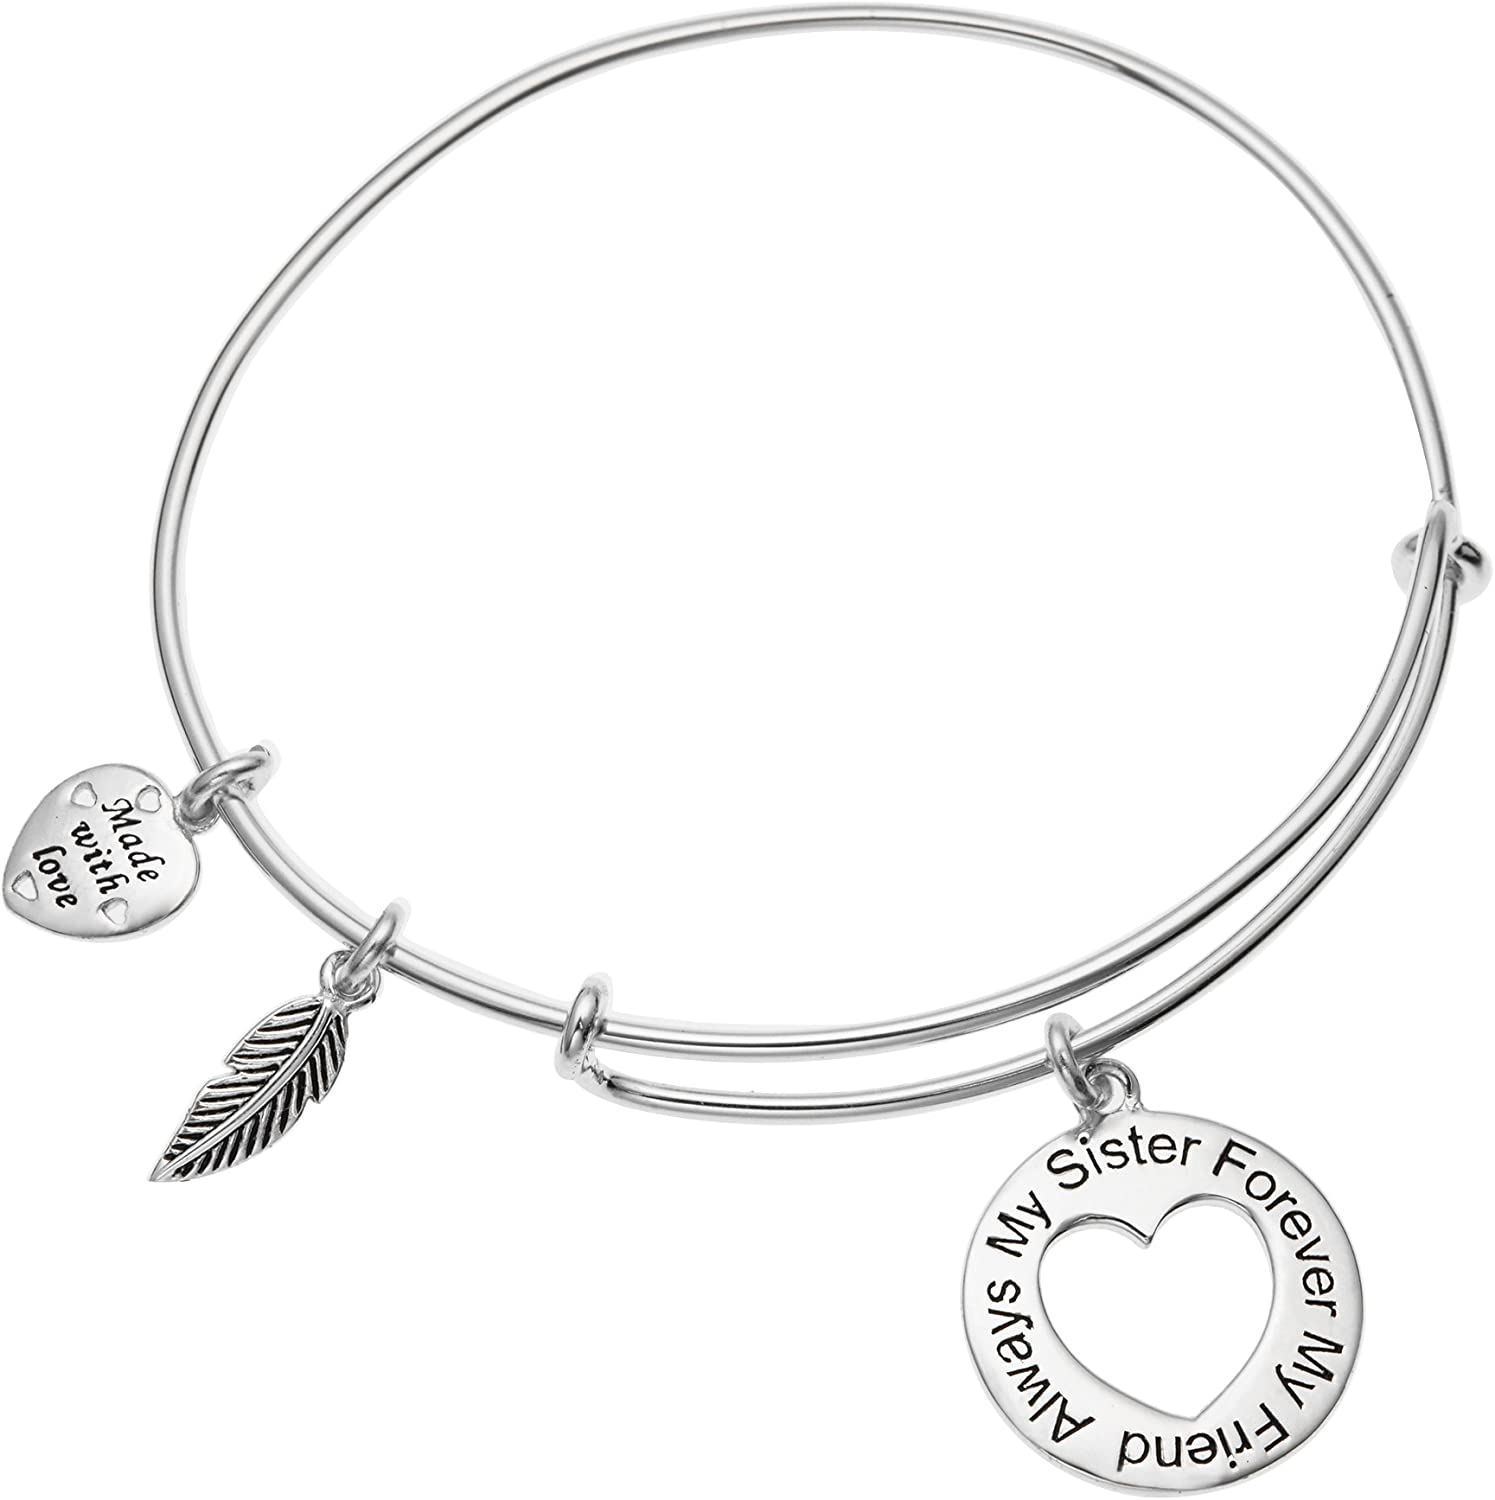 Qina C 925 Sterling Silver Always My Sister Forever My Friend Heart Charm Adjustable Wire Bangle